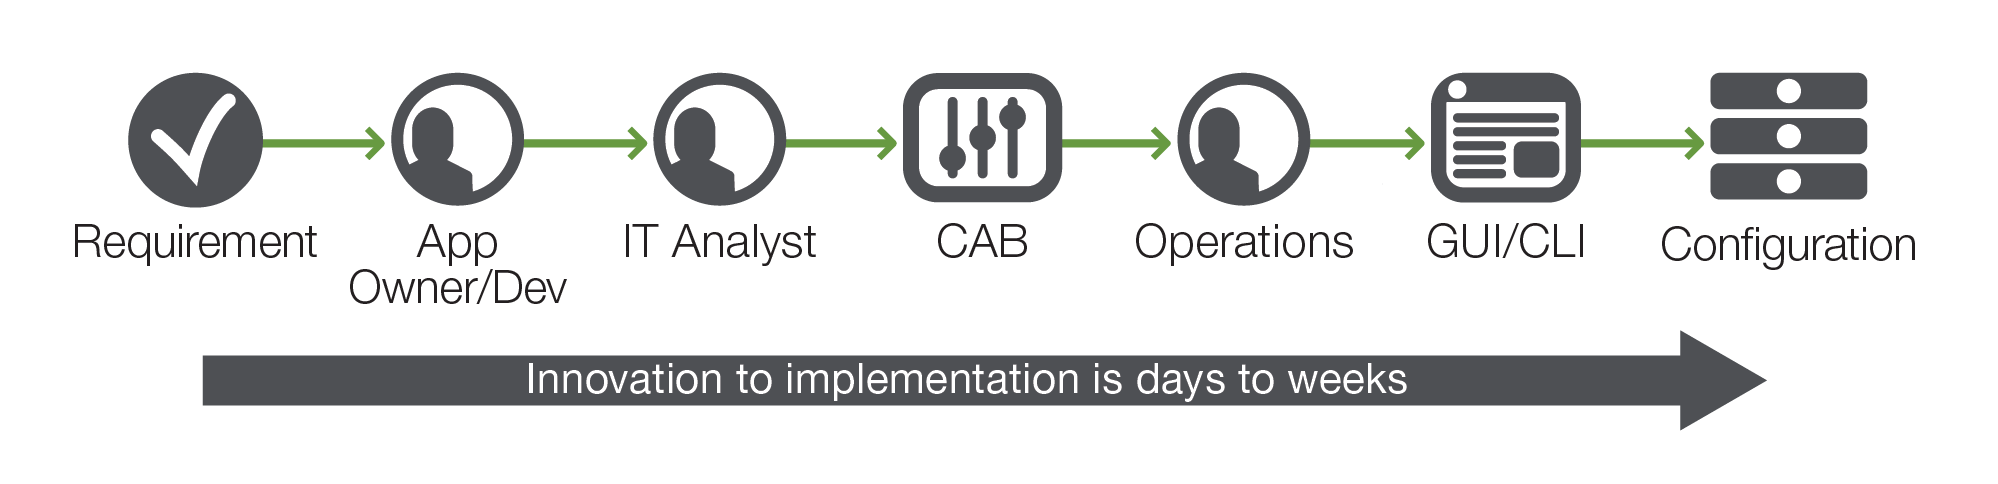 Typical data center deployment process